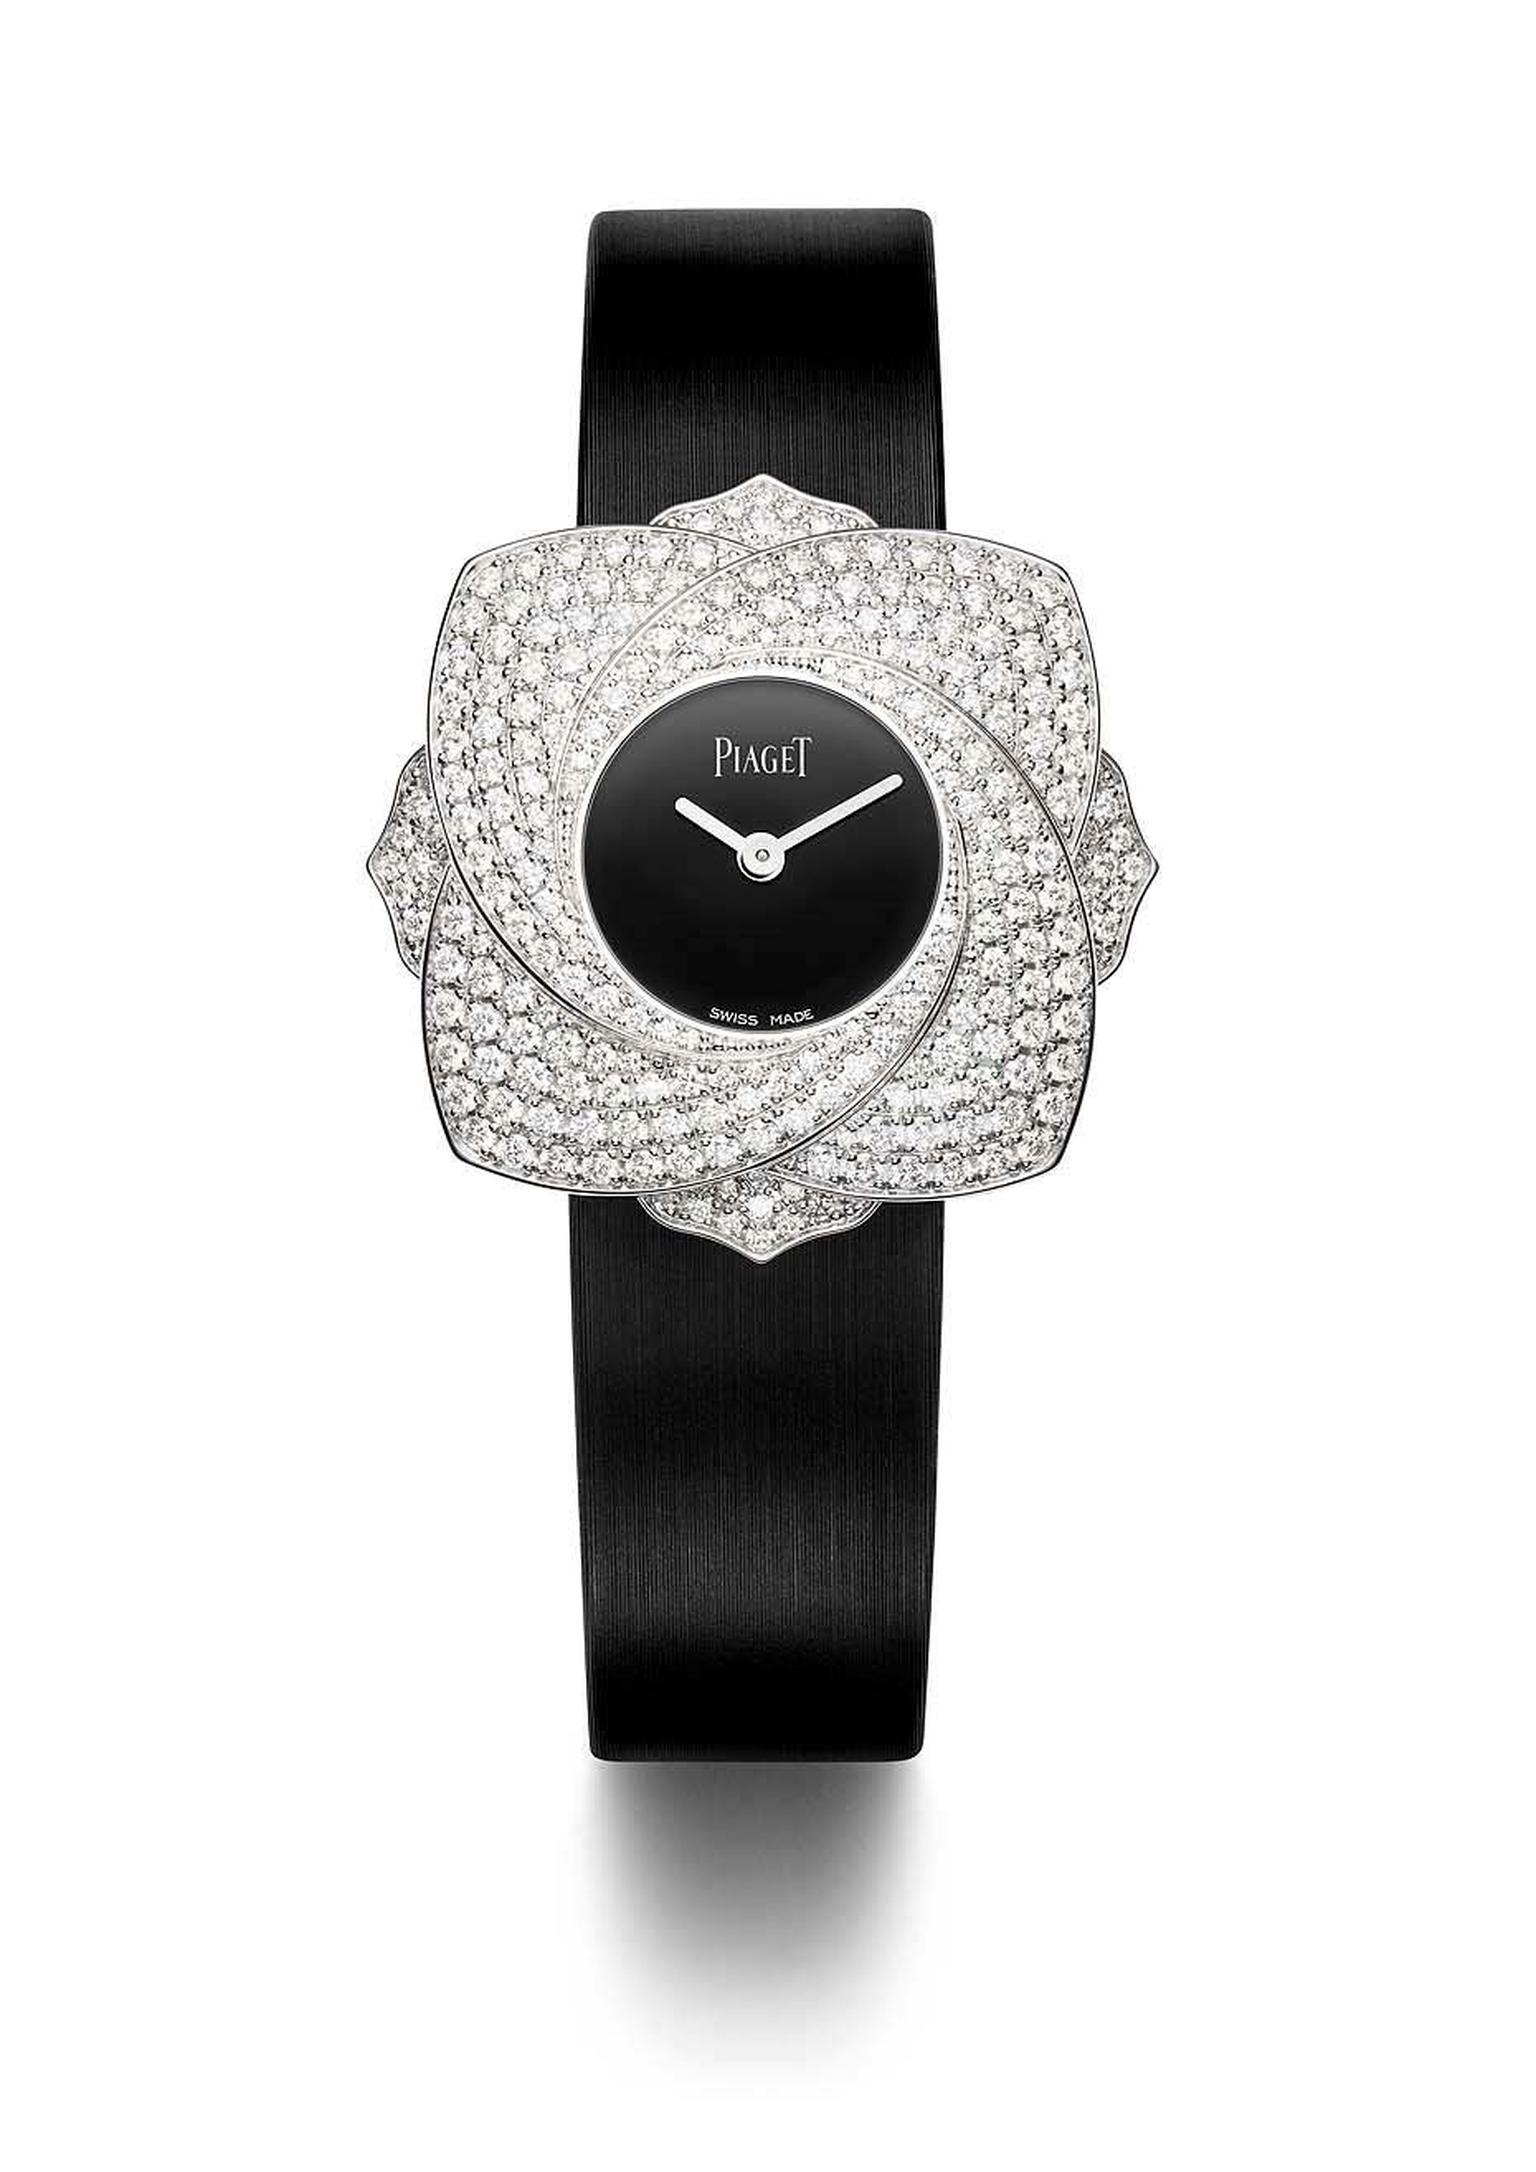 The petals of the rose on Piaget's Limelight Blooming Rose watch are set with 256 diamonds totalling 2.50ct.